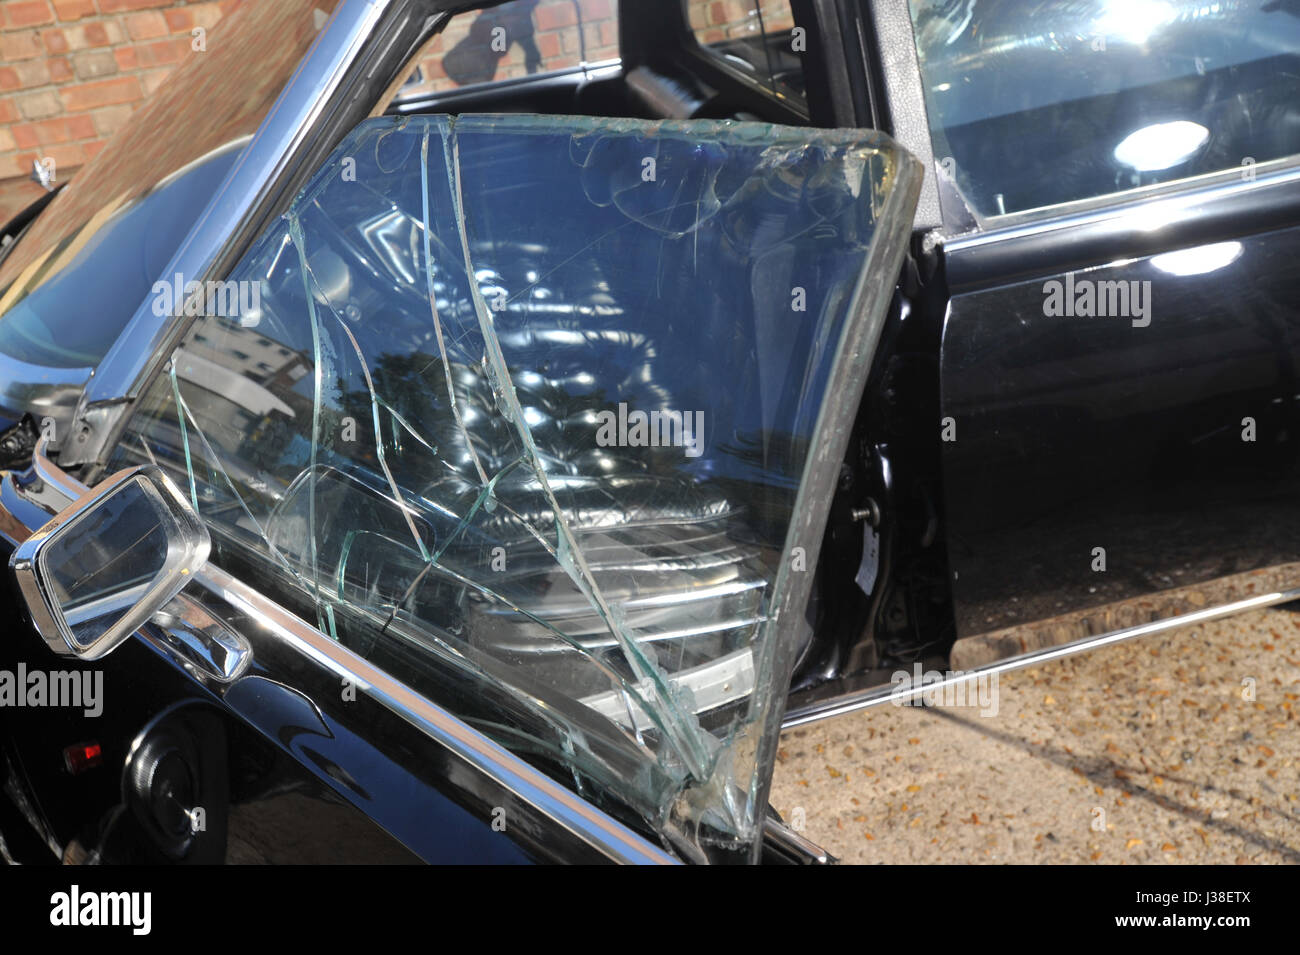 Bullet proof and bullet damaged Chrysler Imperial which Iranian Royal family members escaped in during the 1979 - Stock Image